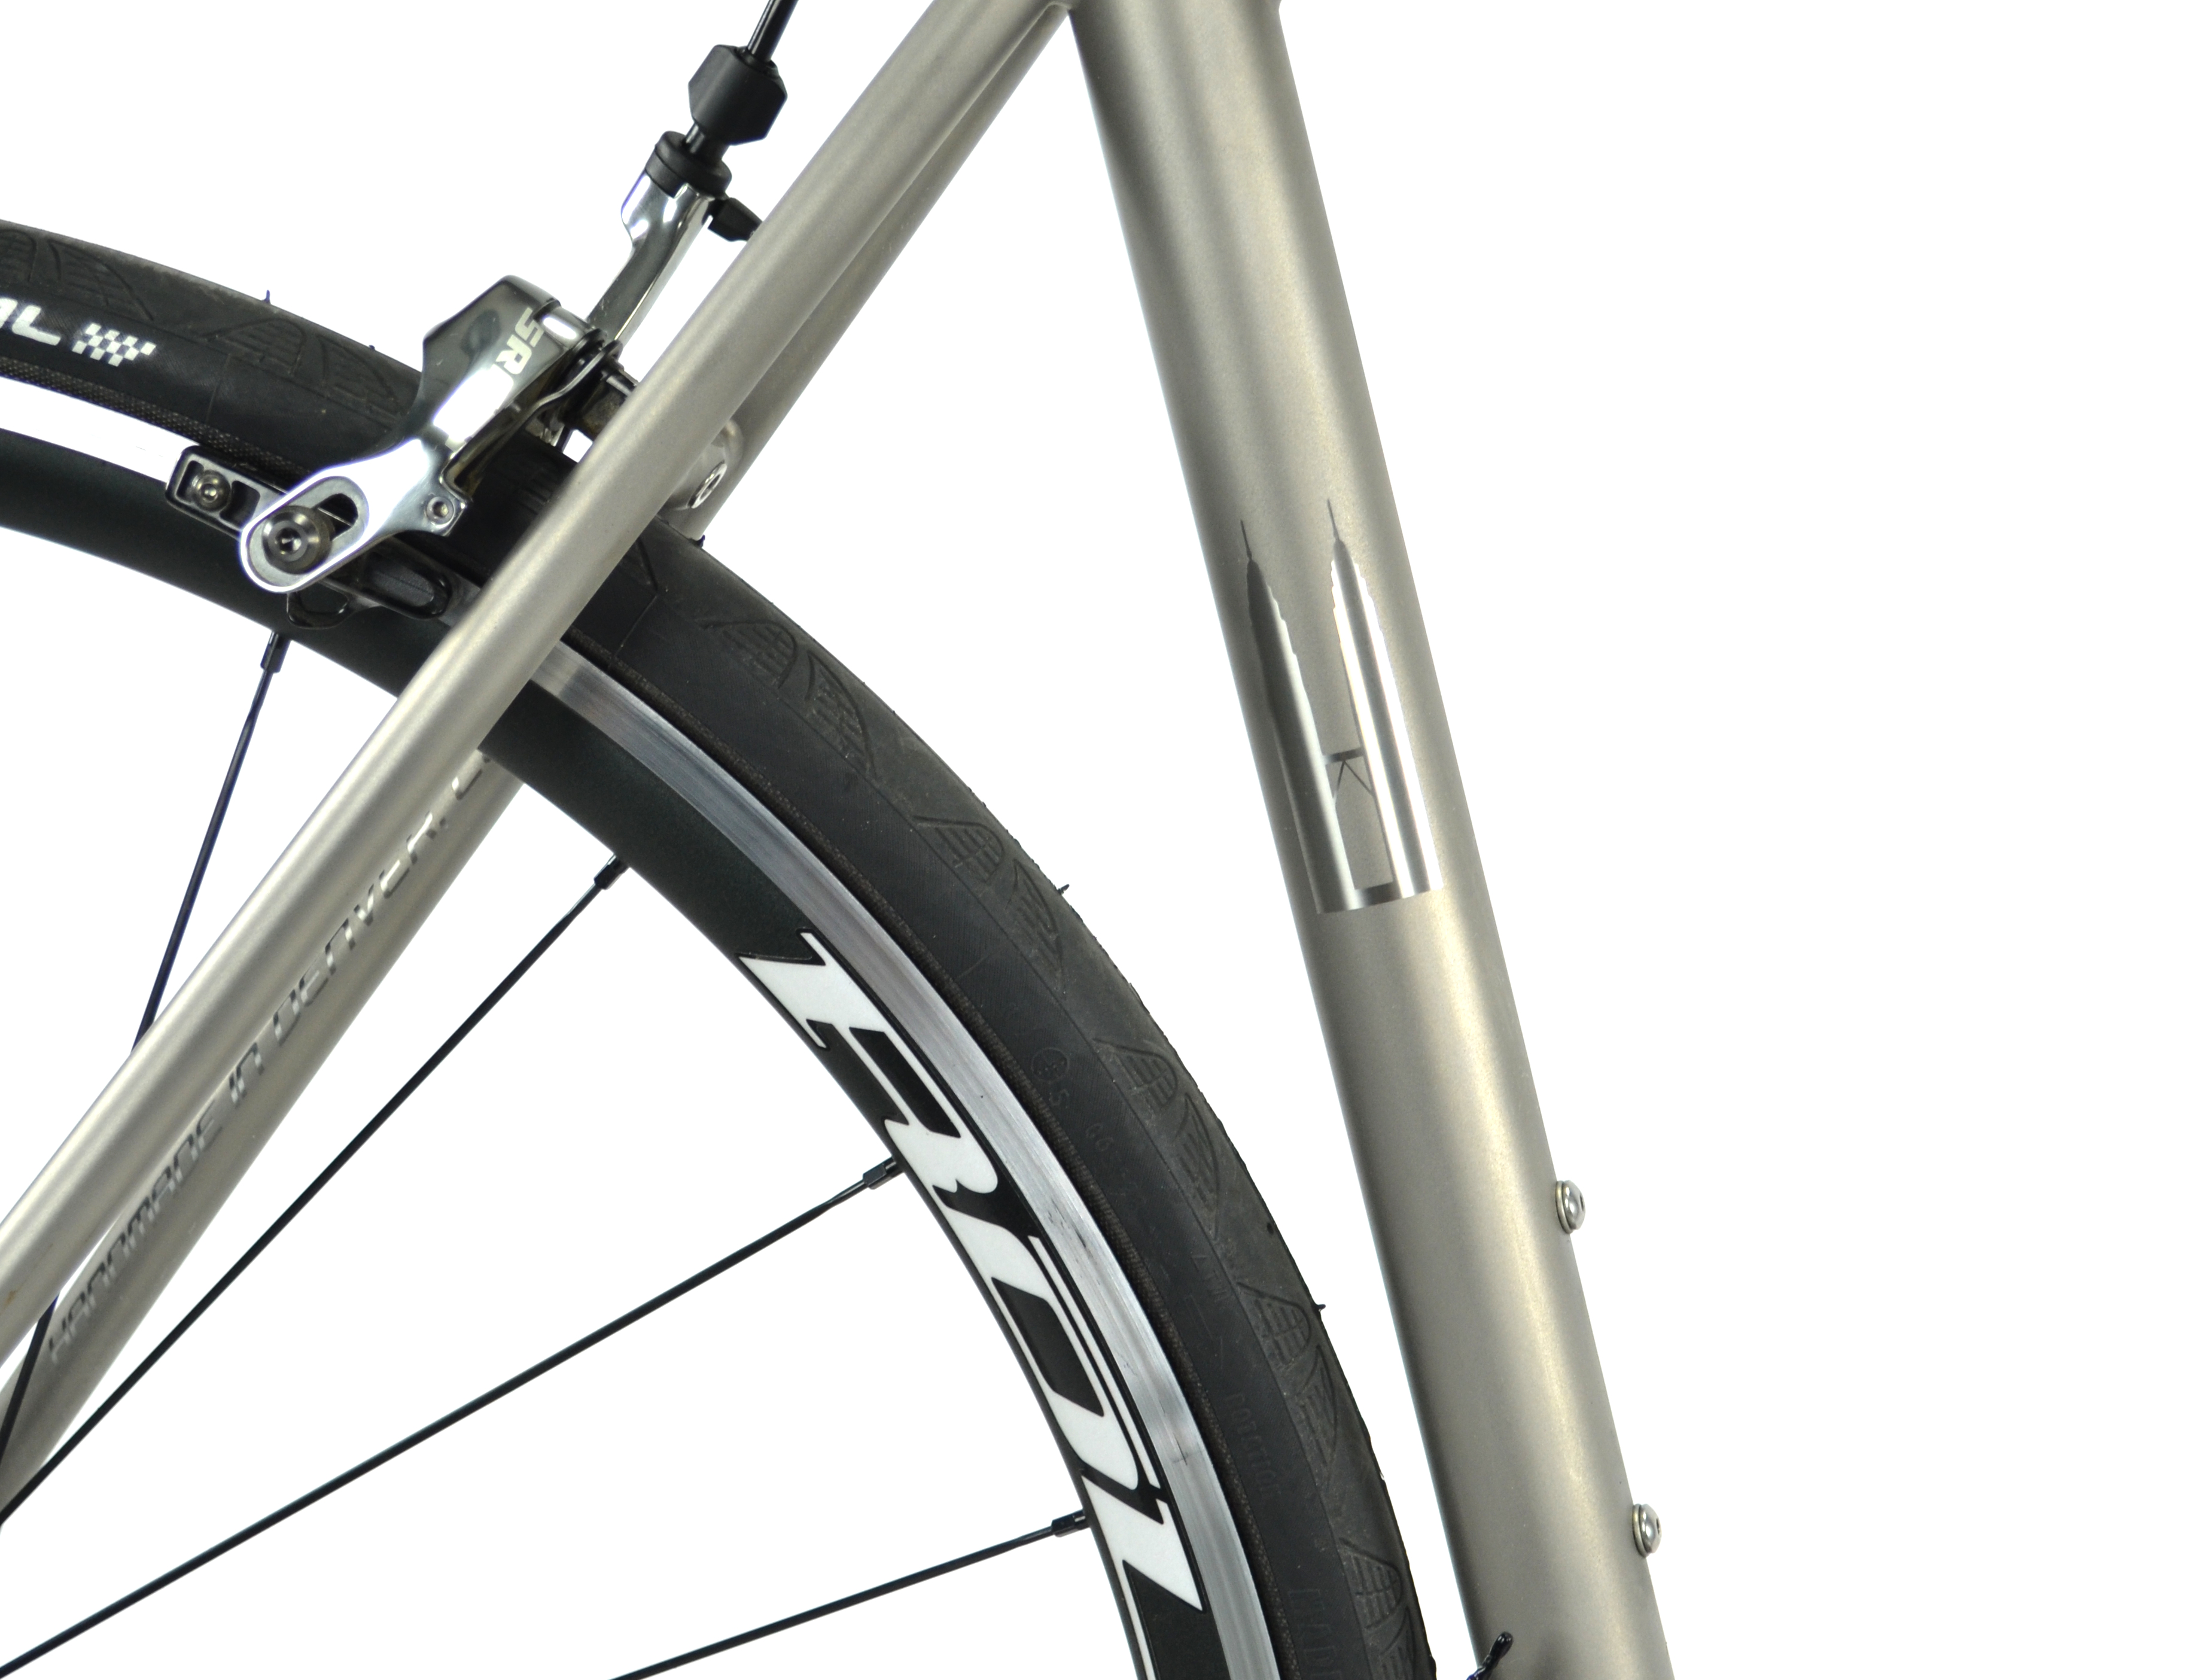 Photograph courtesy of Alchemy Bicycle Company